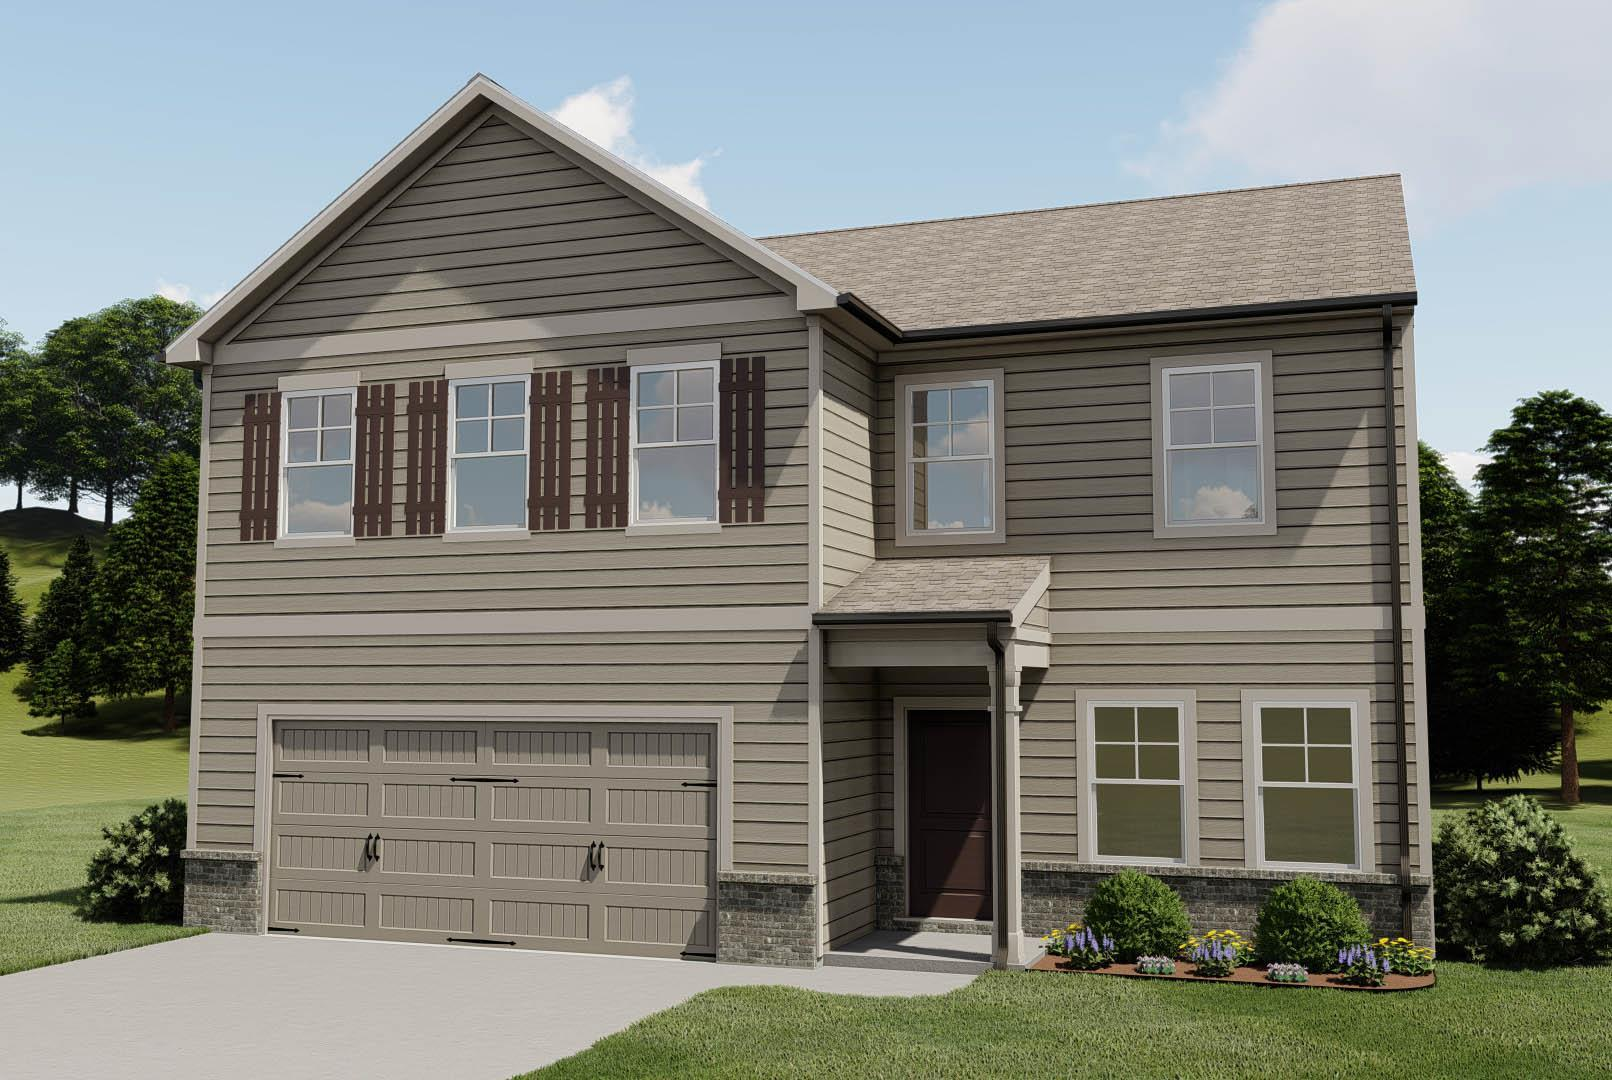 The Redford by Chafin Communities